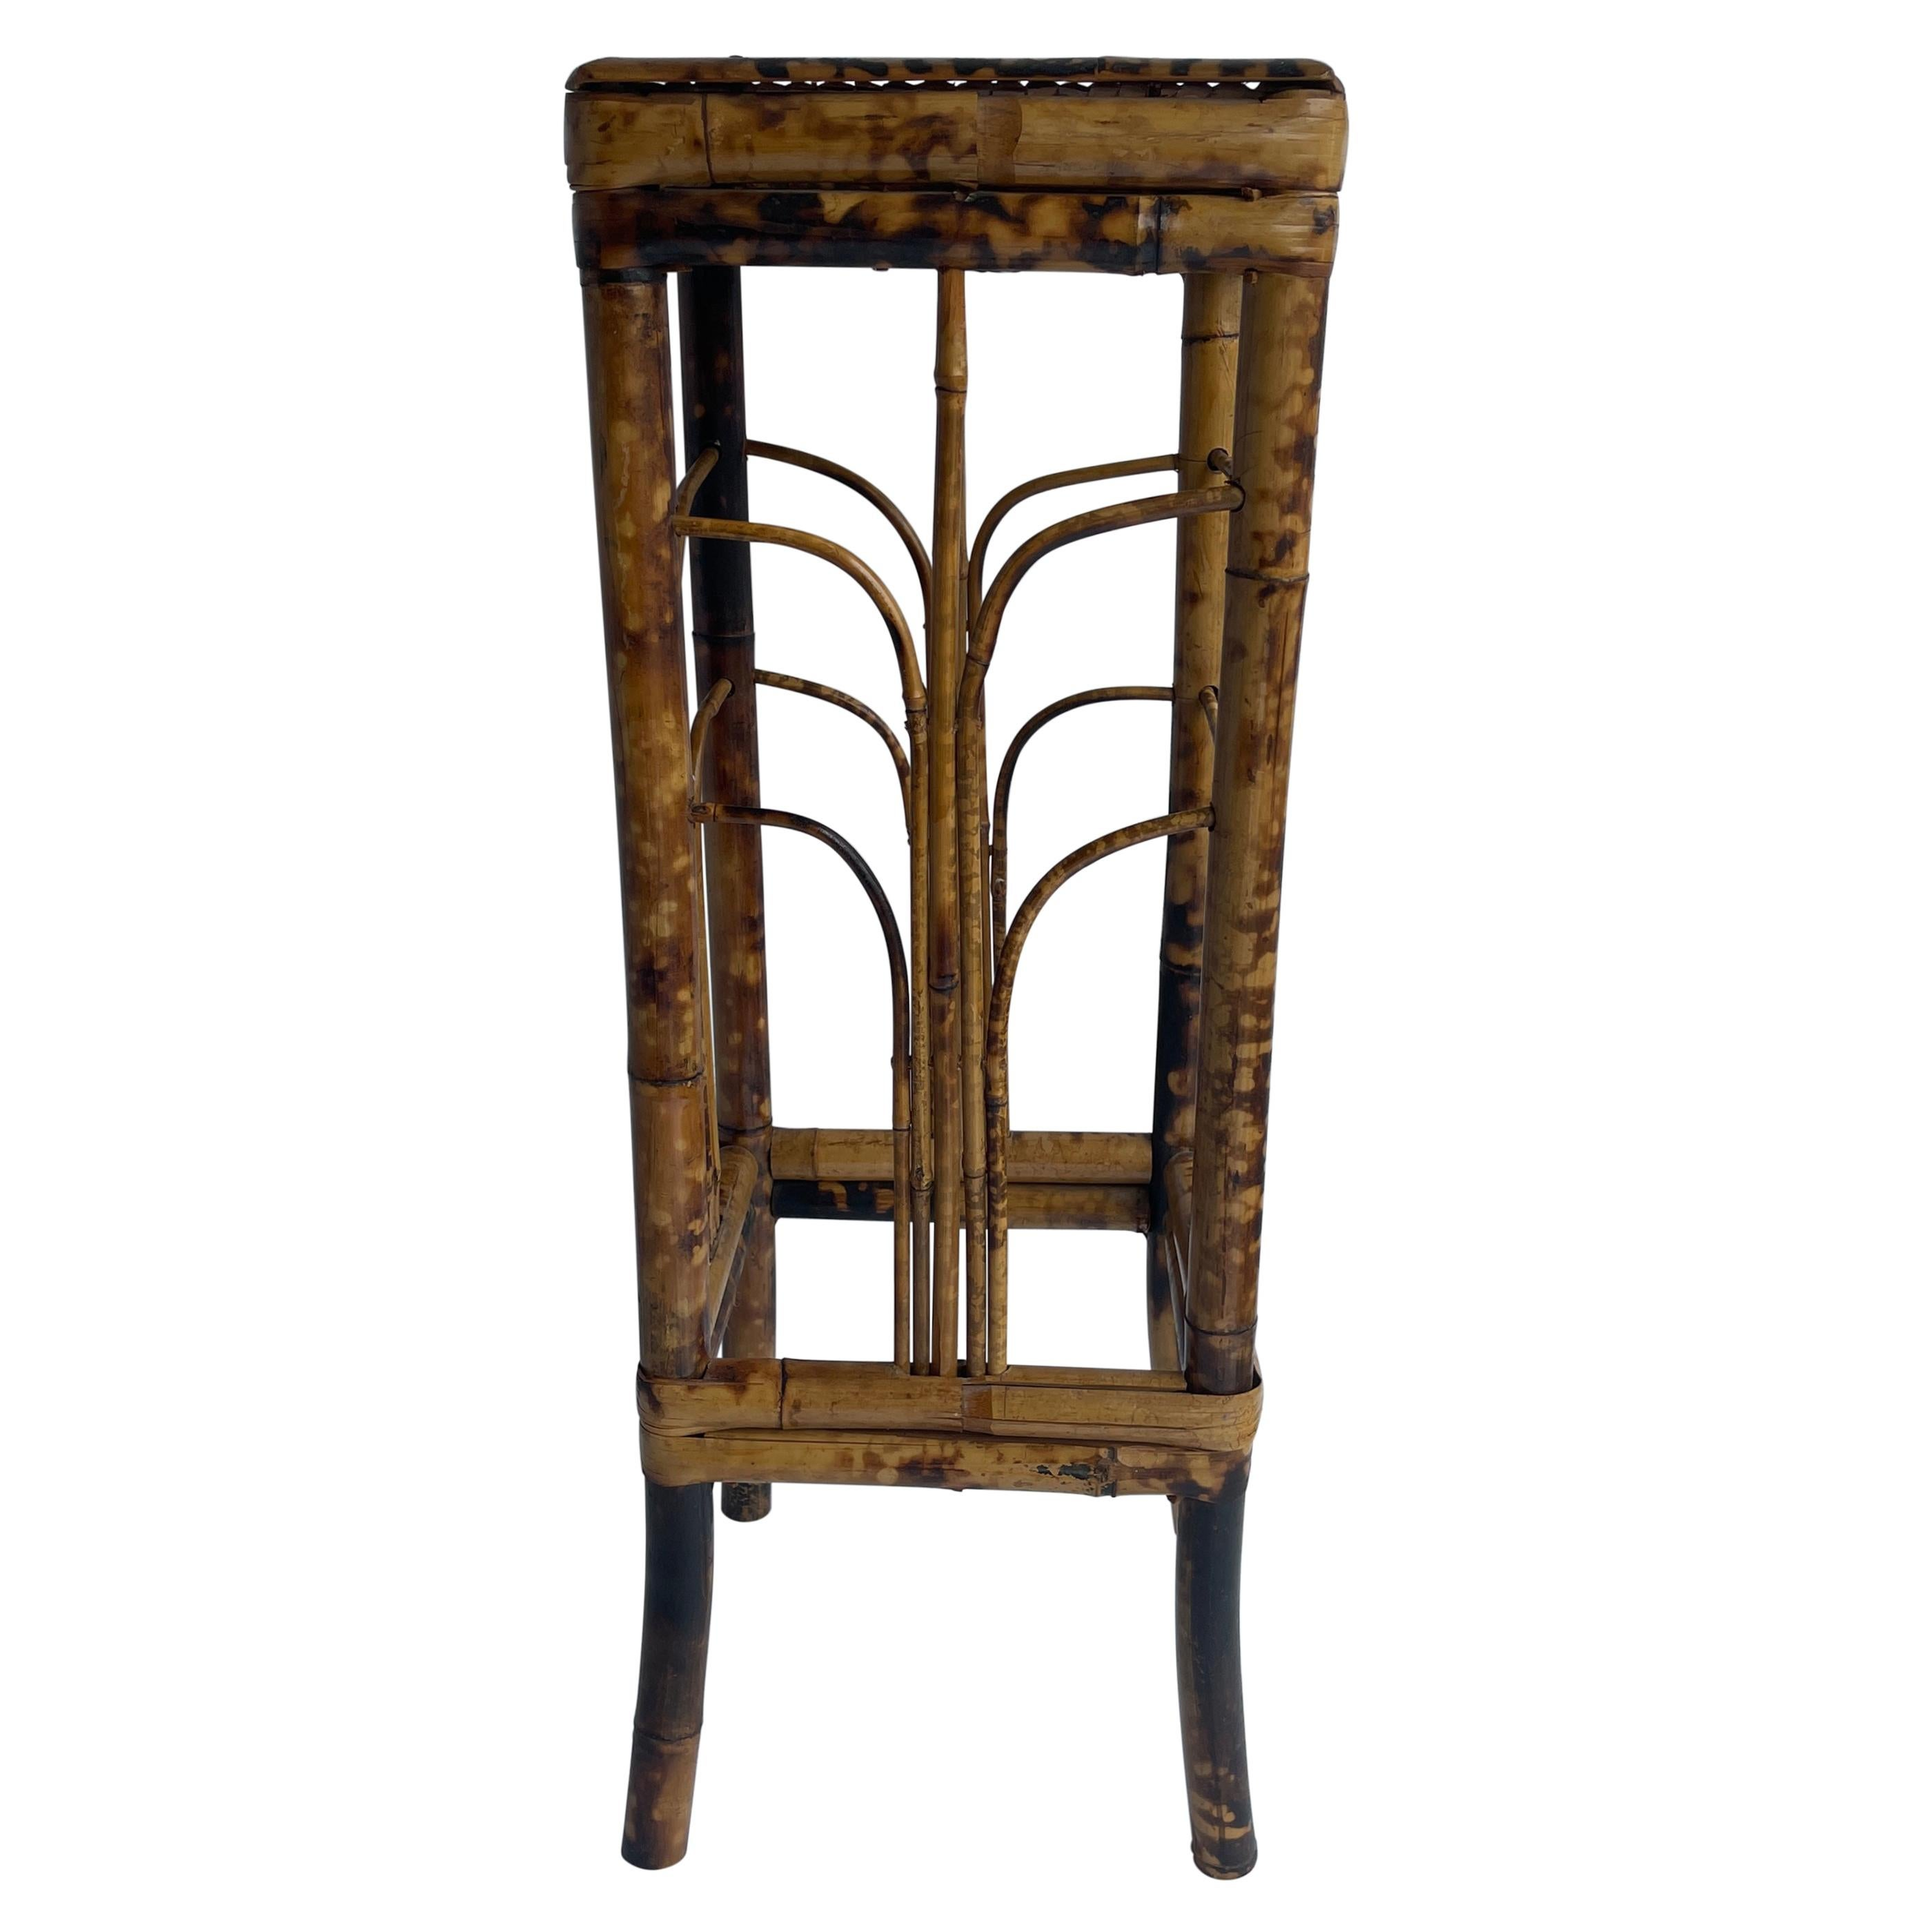 Small Square Bamboo Plant Stand, Mid-Century Modern